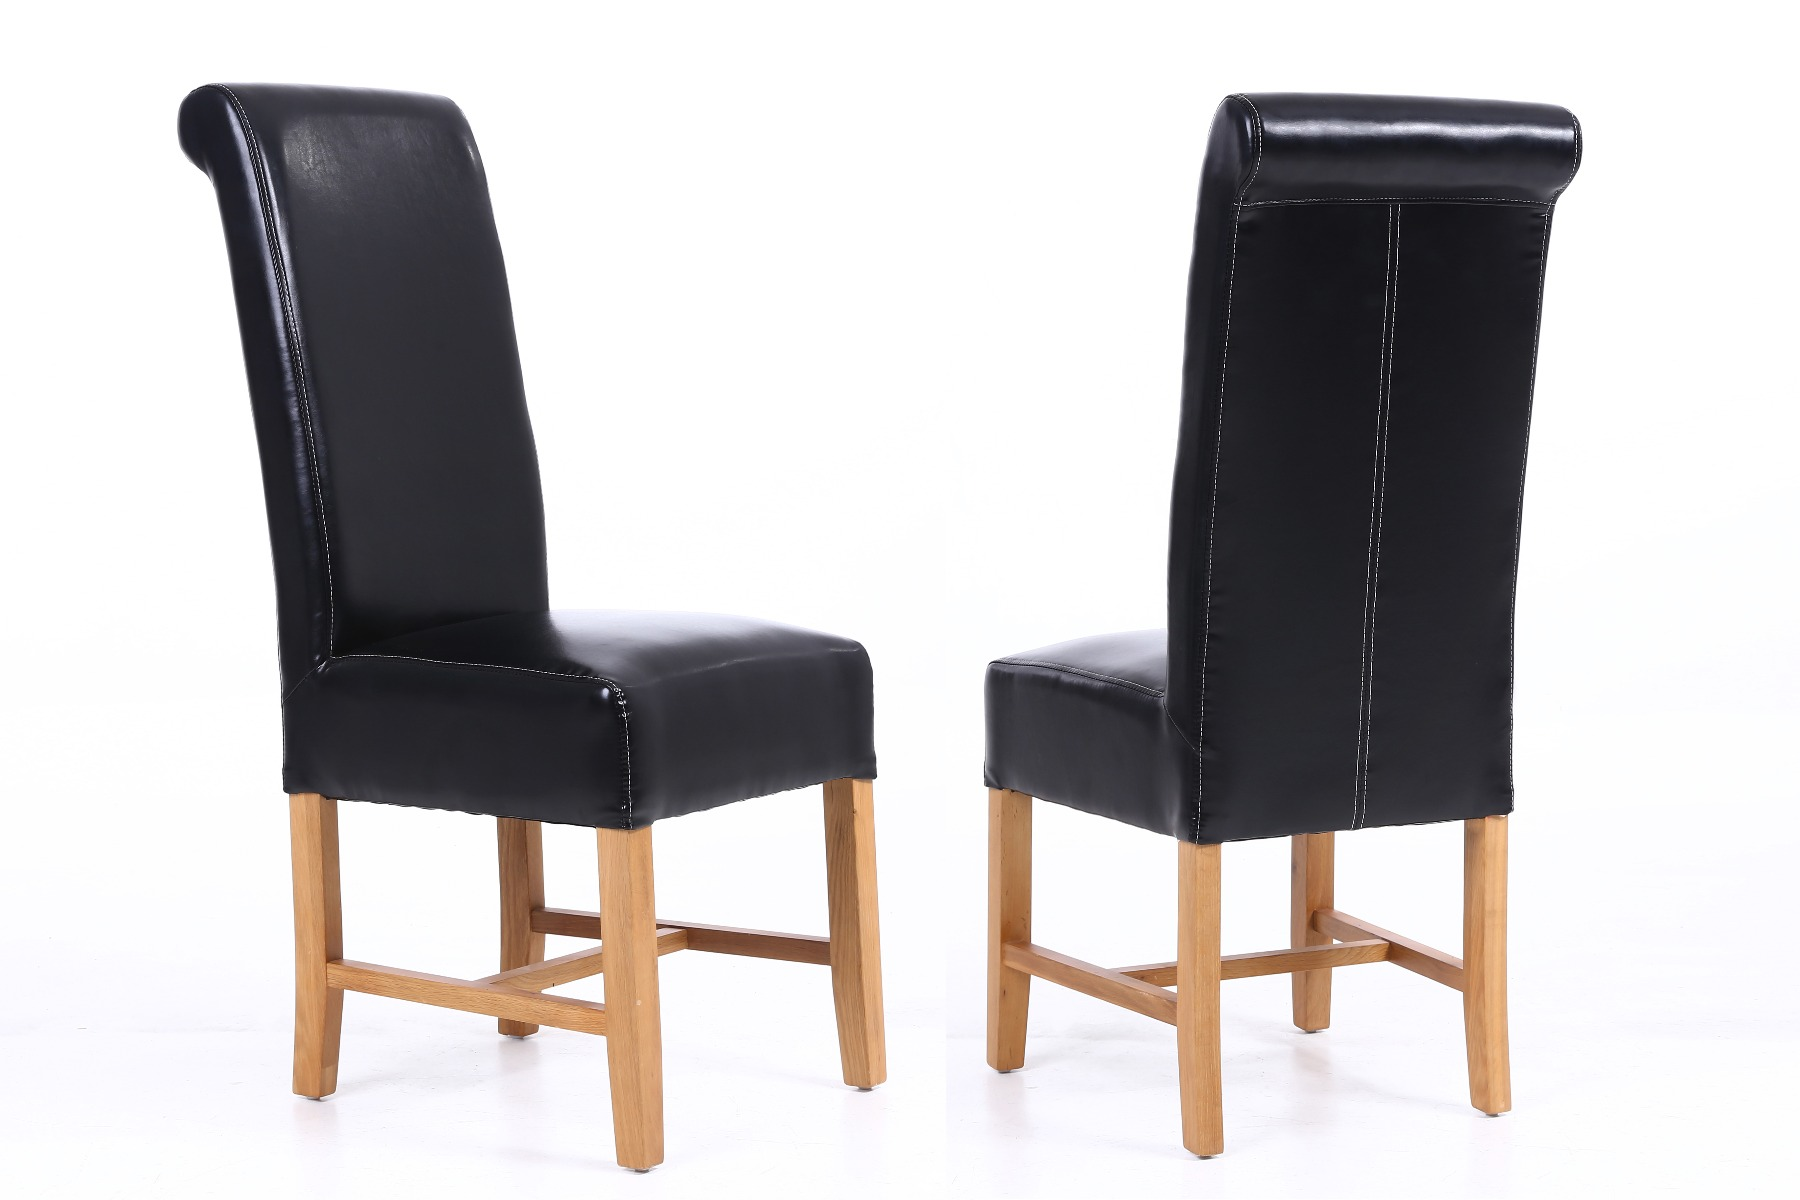 Swell Titan Black Leather Scroll Back Dining Chairs With Oak Legs Autumn Sale Machost Co Dining Chair Design Ideas Machostcouk